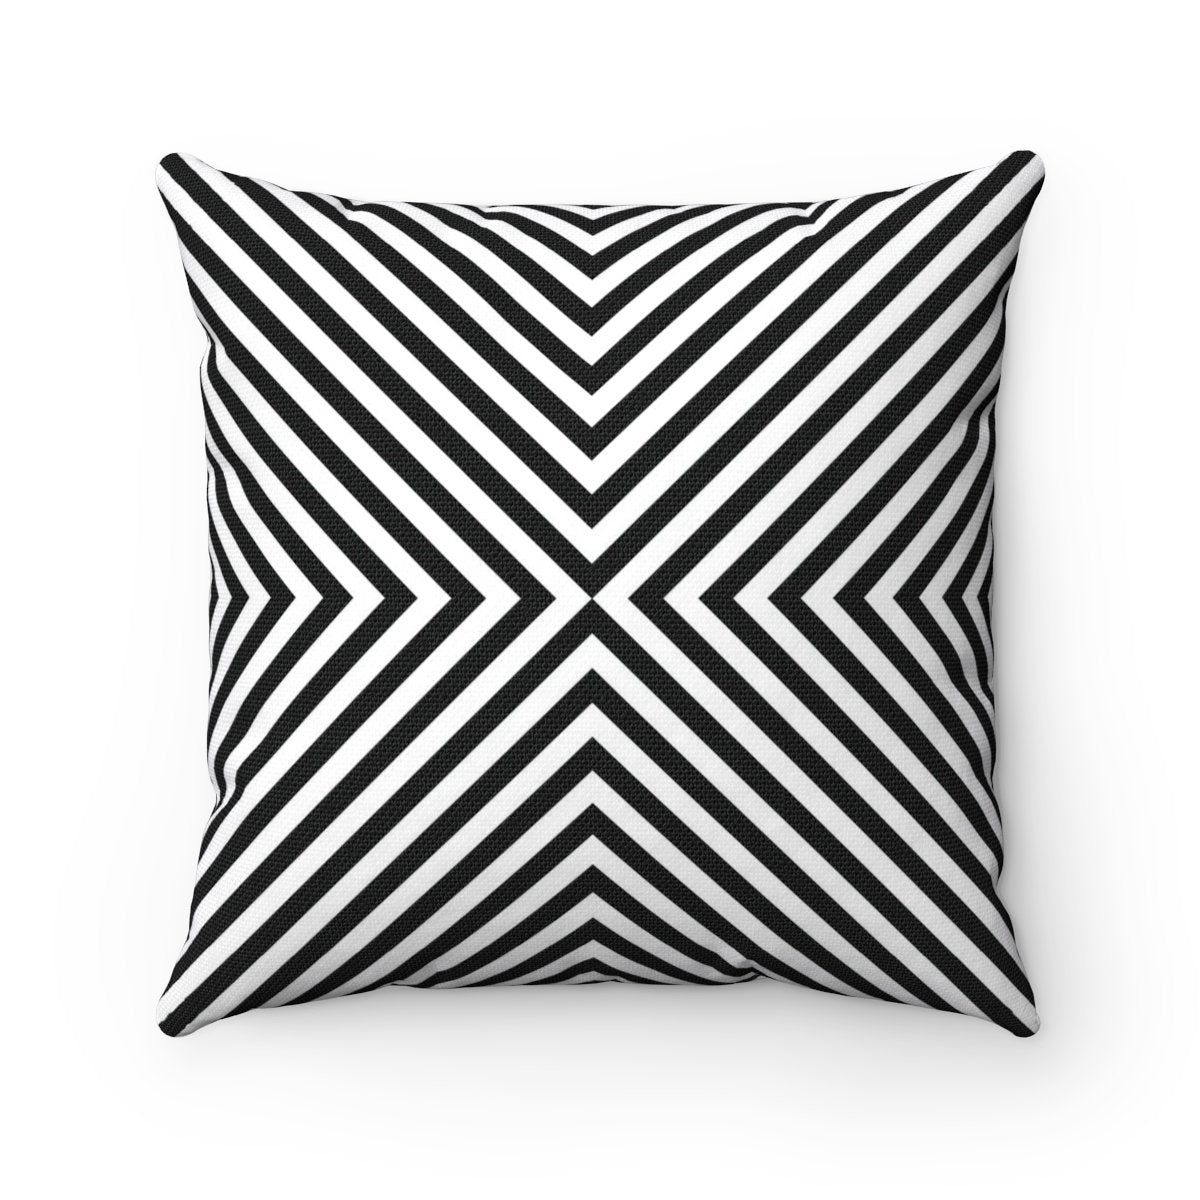 Black and white geometric contemporary decorative cushion cover-Home Decor - Decorative Accents - Pillows & Throws - Decorative Pillows-Maison d'Elite-Très Elite